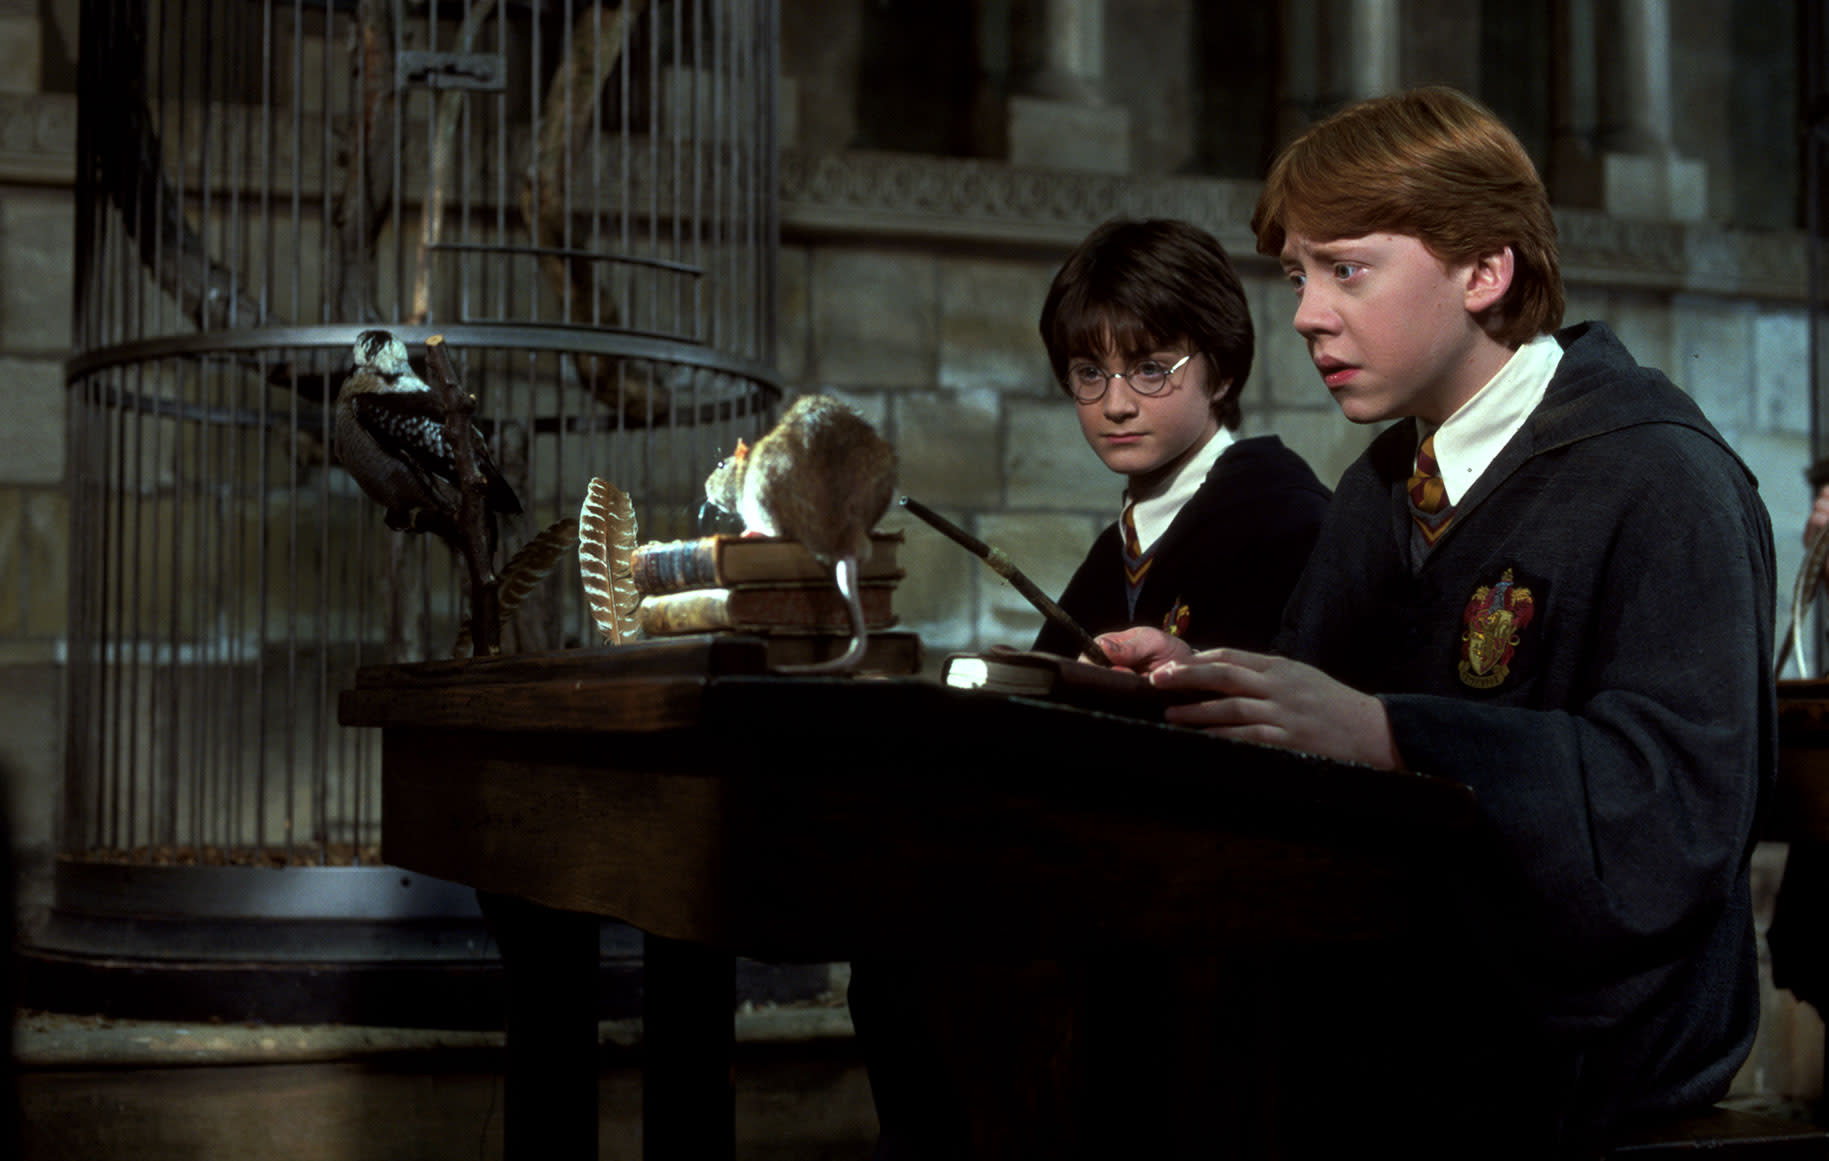 WB-HP-philosophers-stone-harry-ron-scabbers-transfiguration-desks